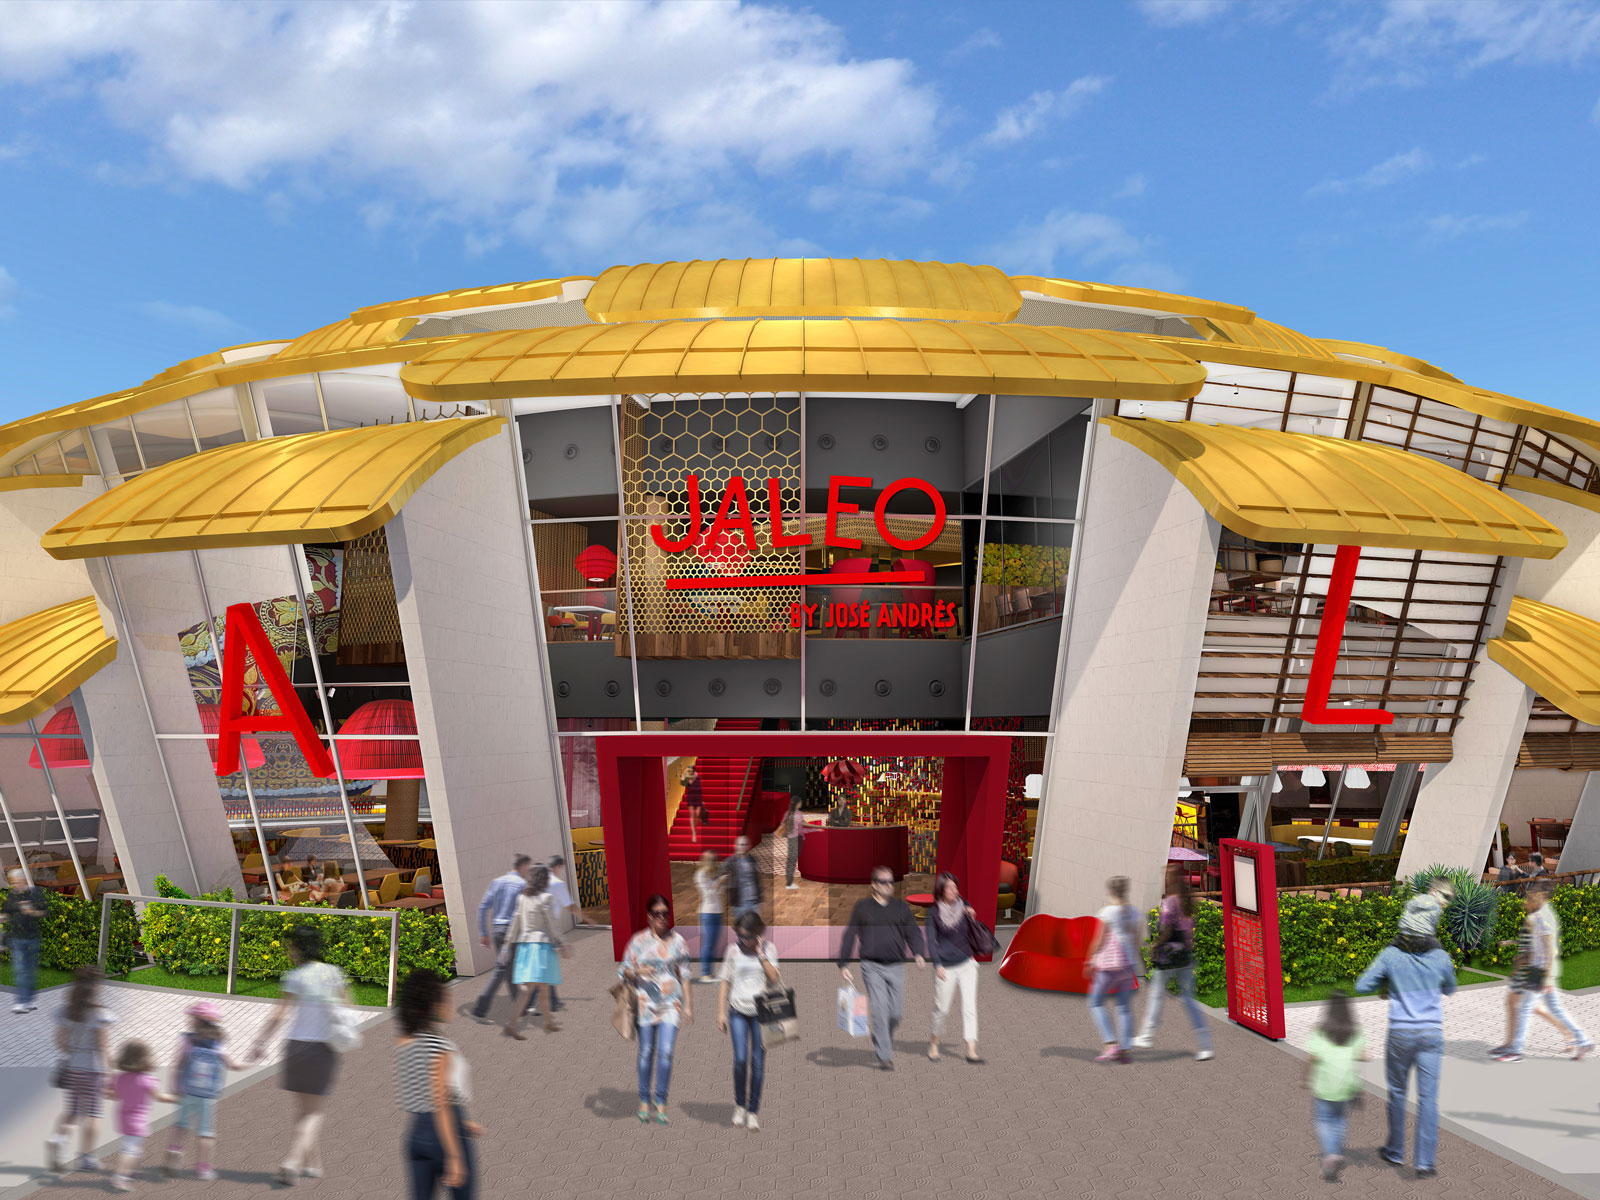 Jaleo at Disney Springs Will Look Like a Giant Artichoke